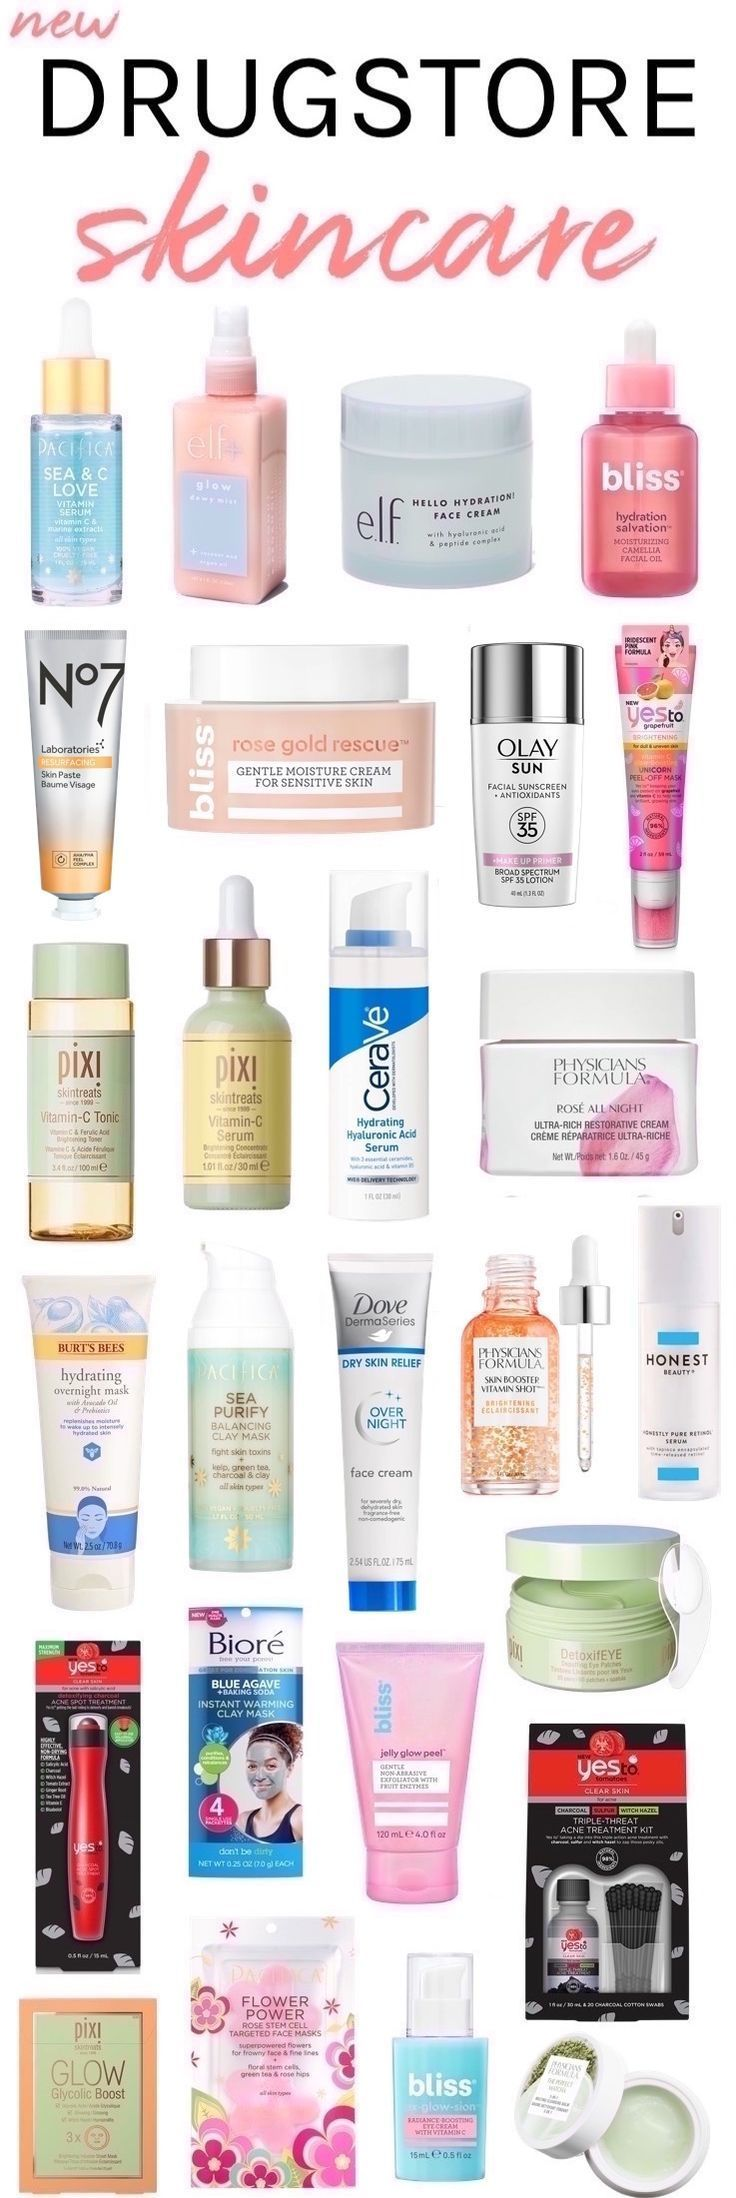 27 New Drugstore Skincare Picks You Won't Want to Miss!